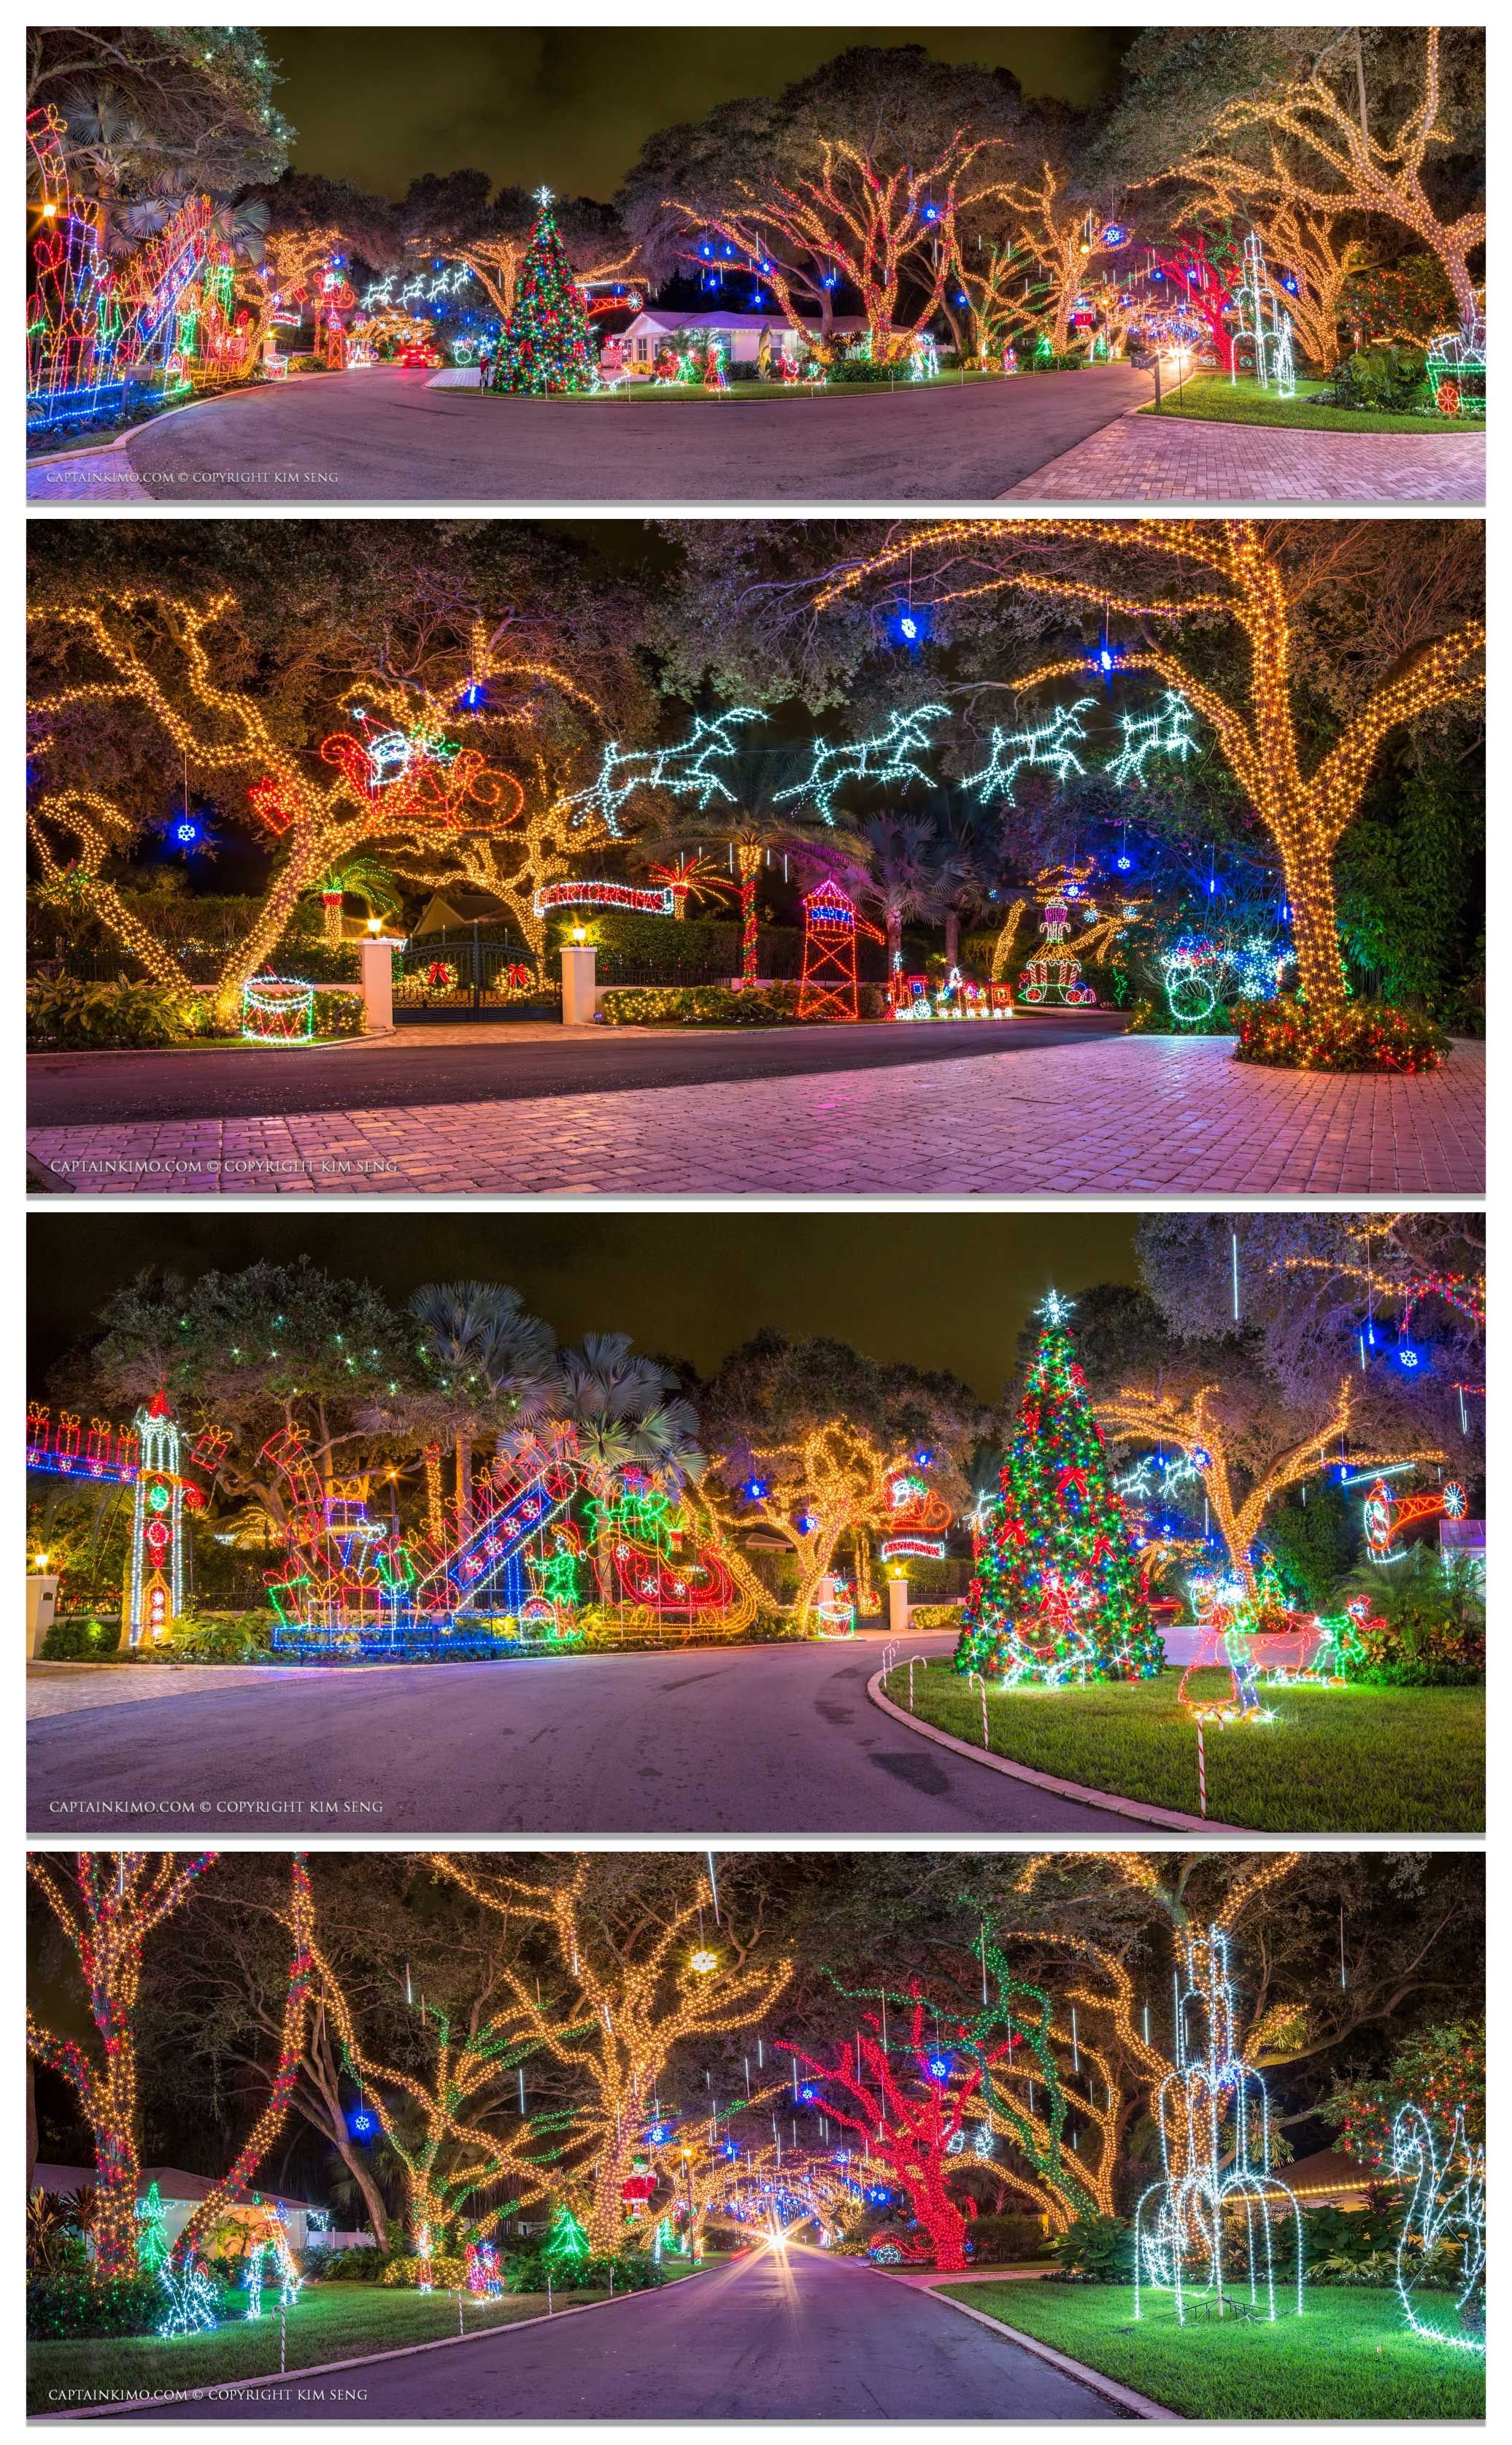 captain kimo snug harborpalm beach countybeach gardenssunshine statechristmas lightsmerry